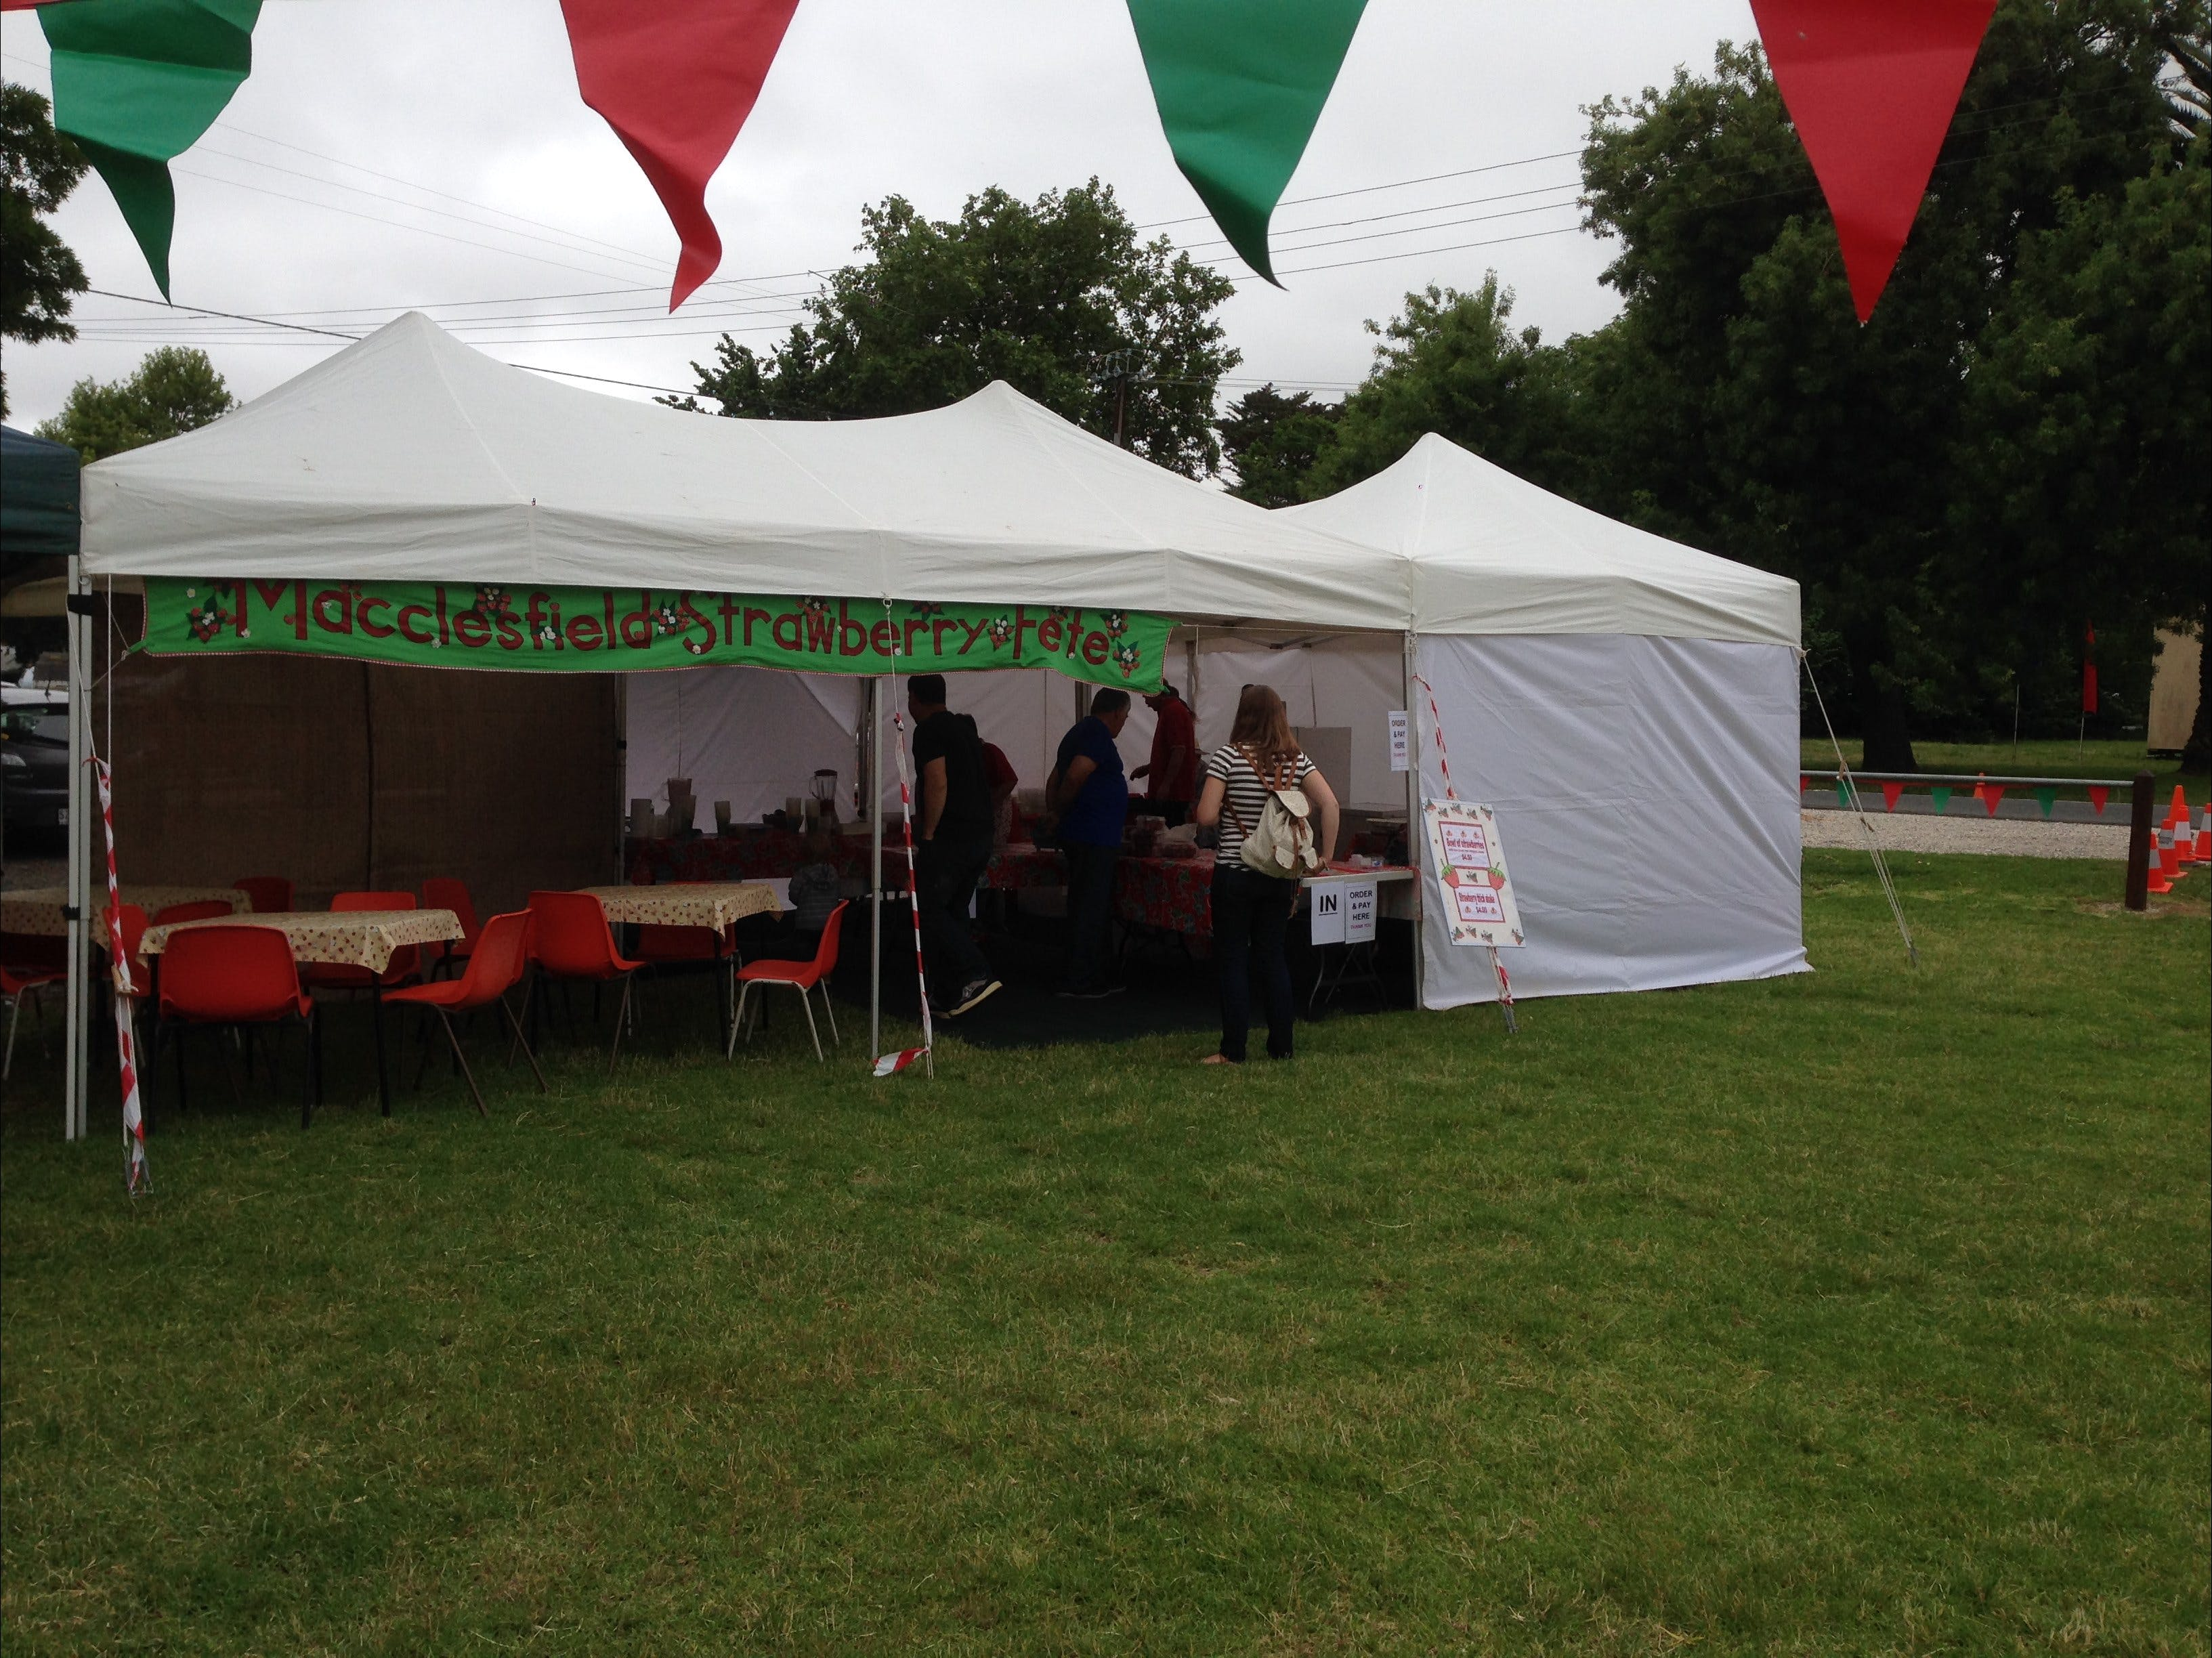 Macclesfield Strawberry Fete - VIC Tourism